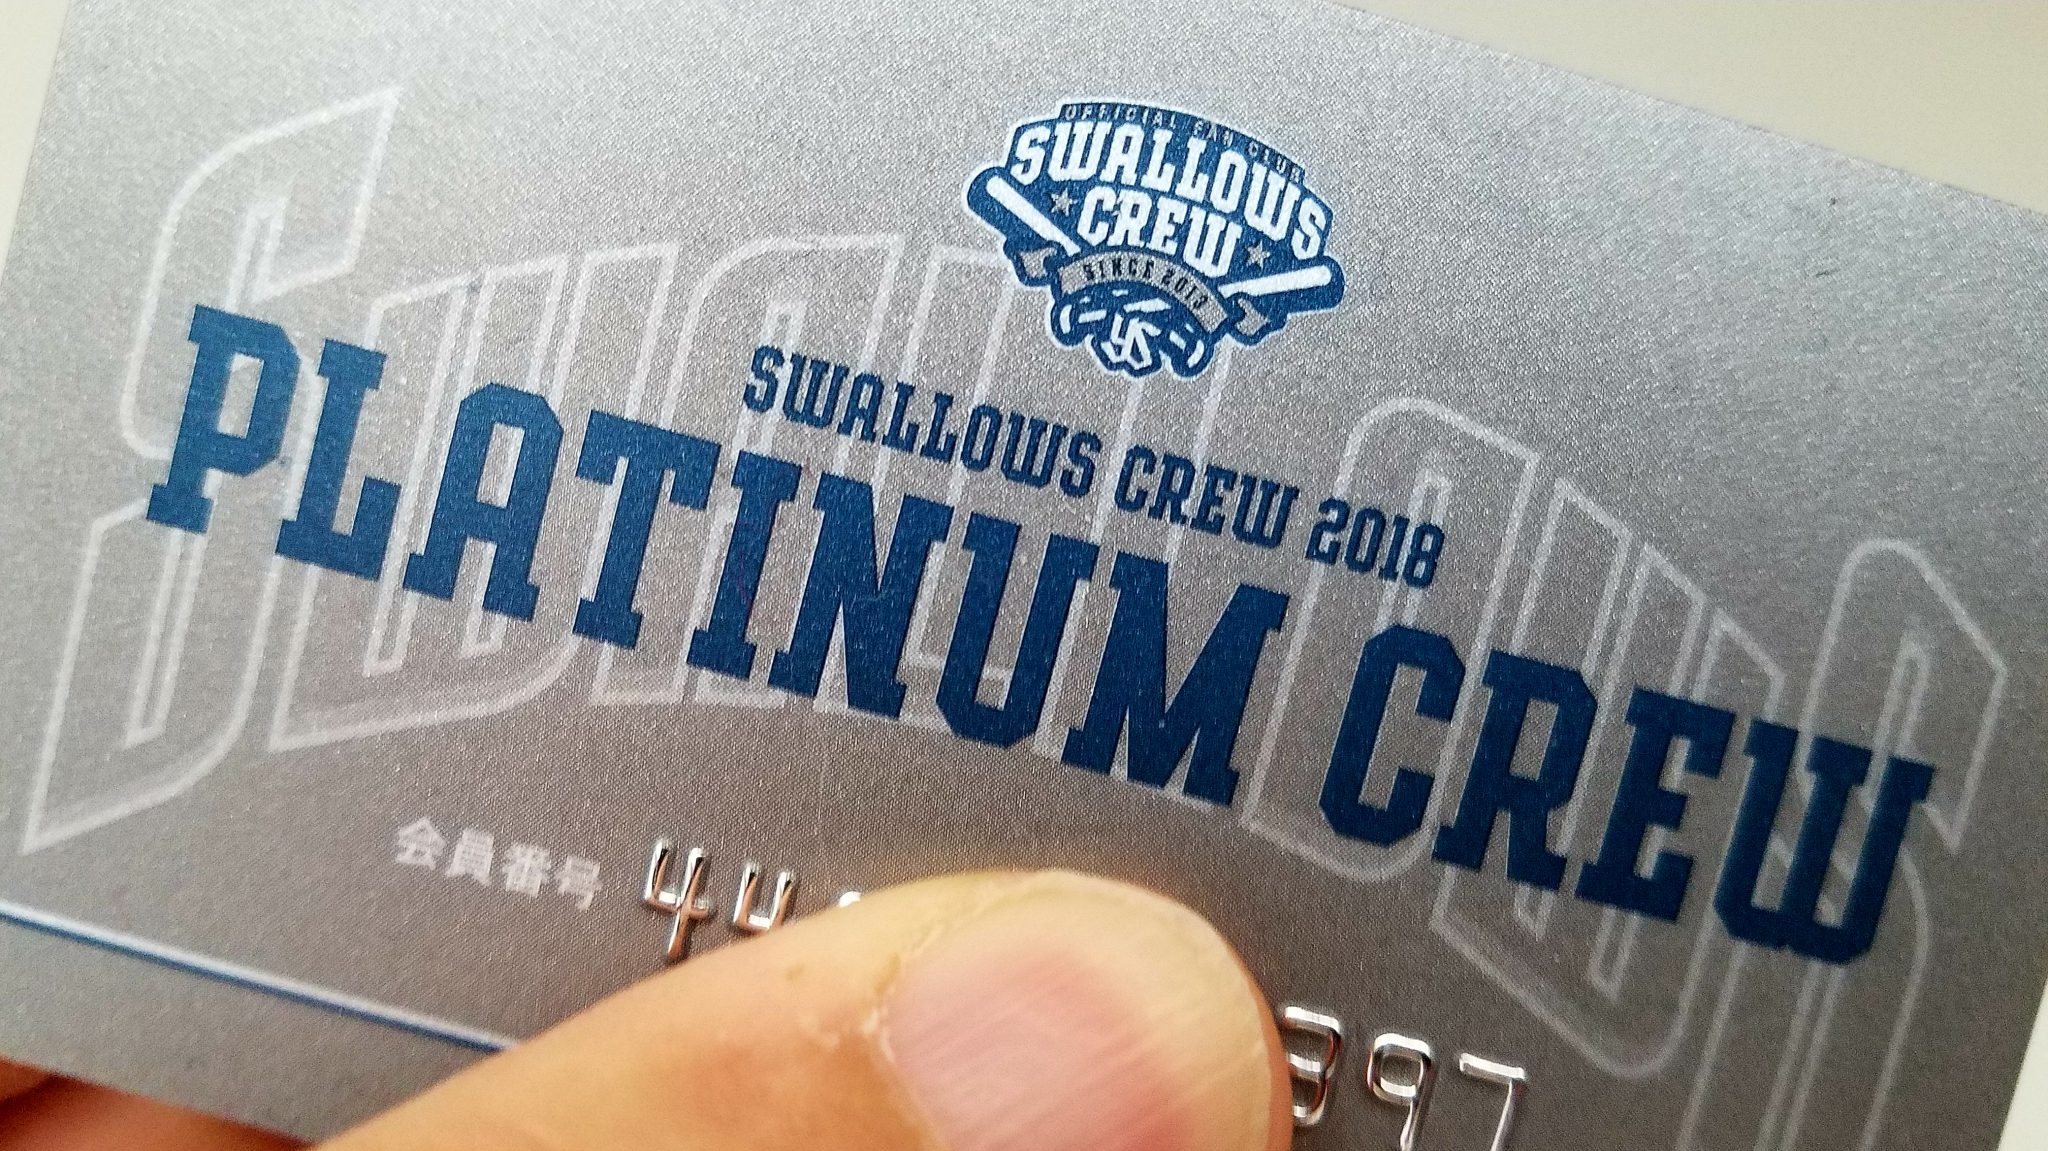 Tokyo Yakult Swallows 2018 Swallows Crew Platinum Tier Unboxing. 東京ヤクルトスワローズ